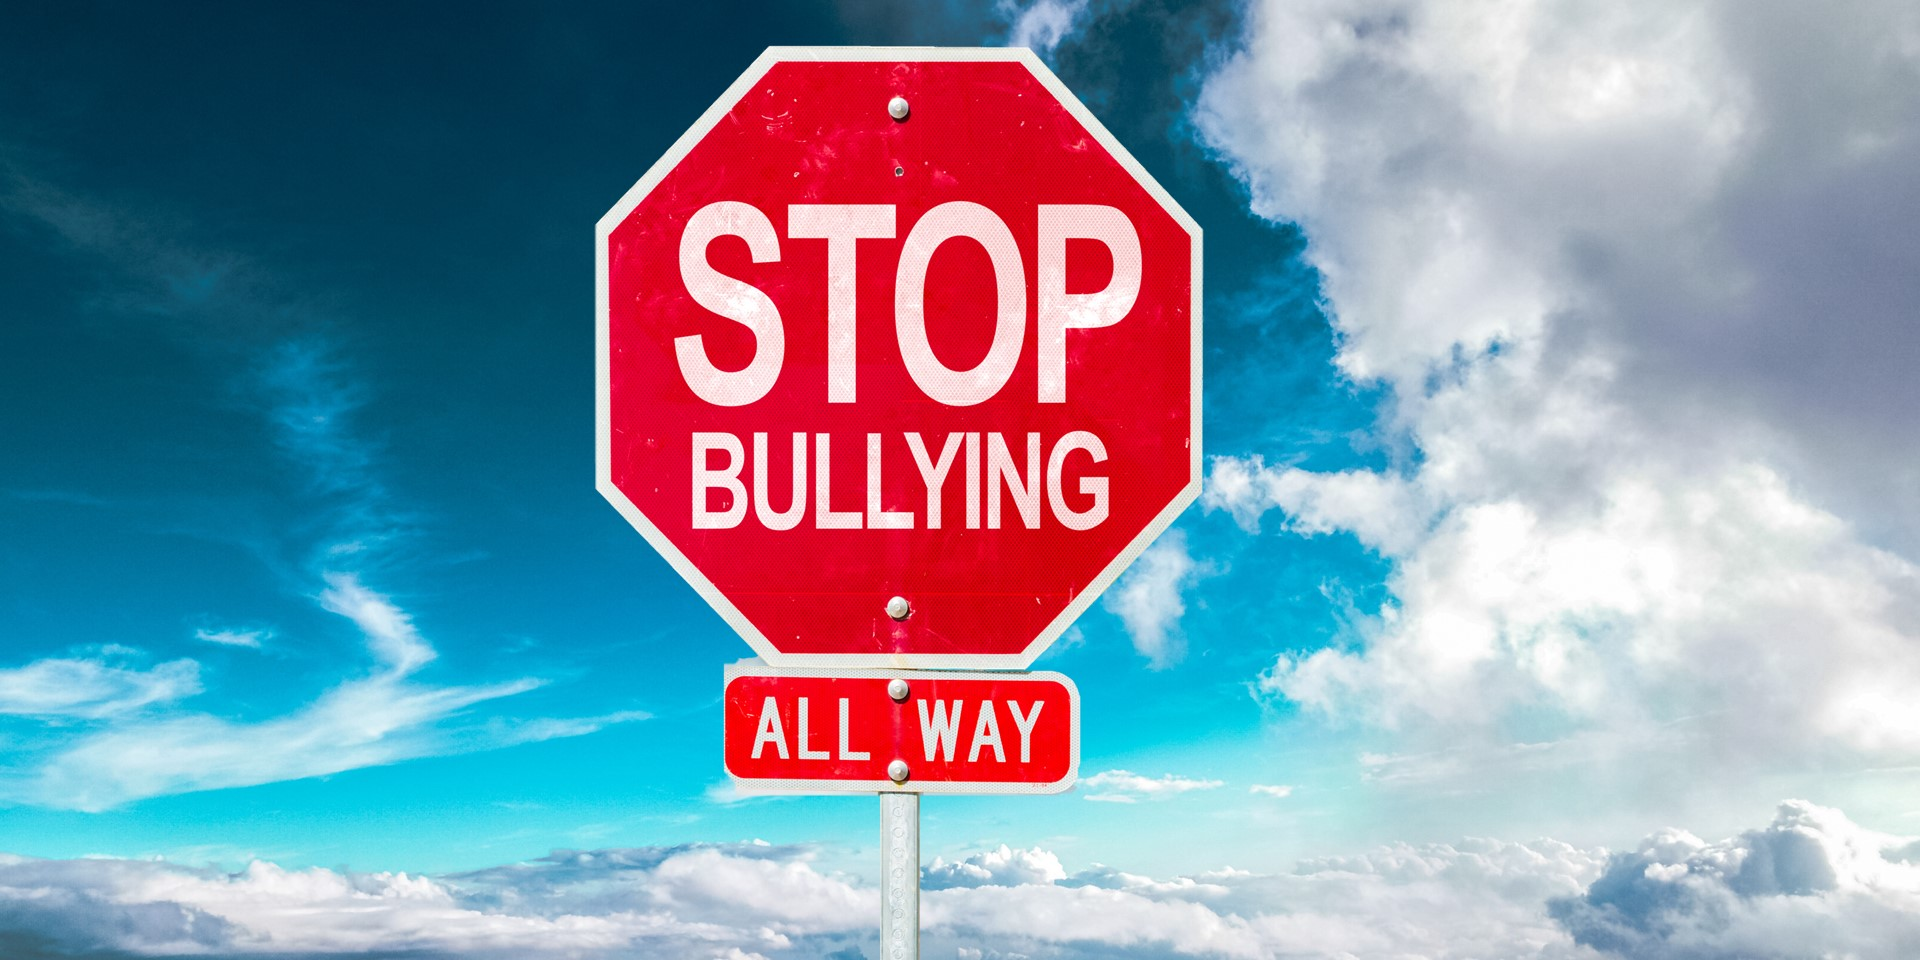 Section Photo Violence-bullying